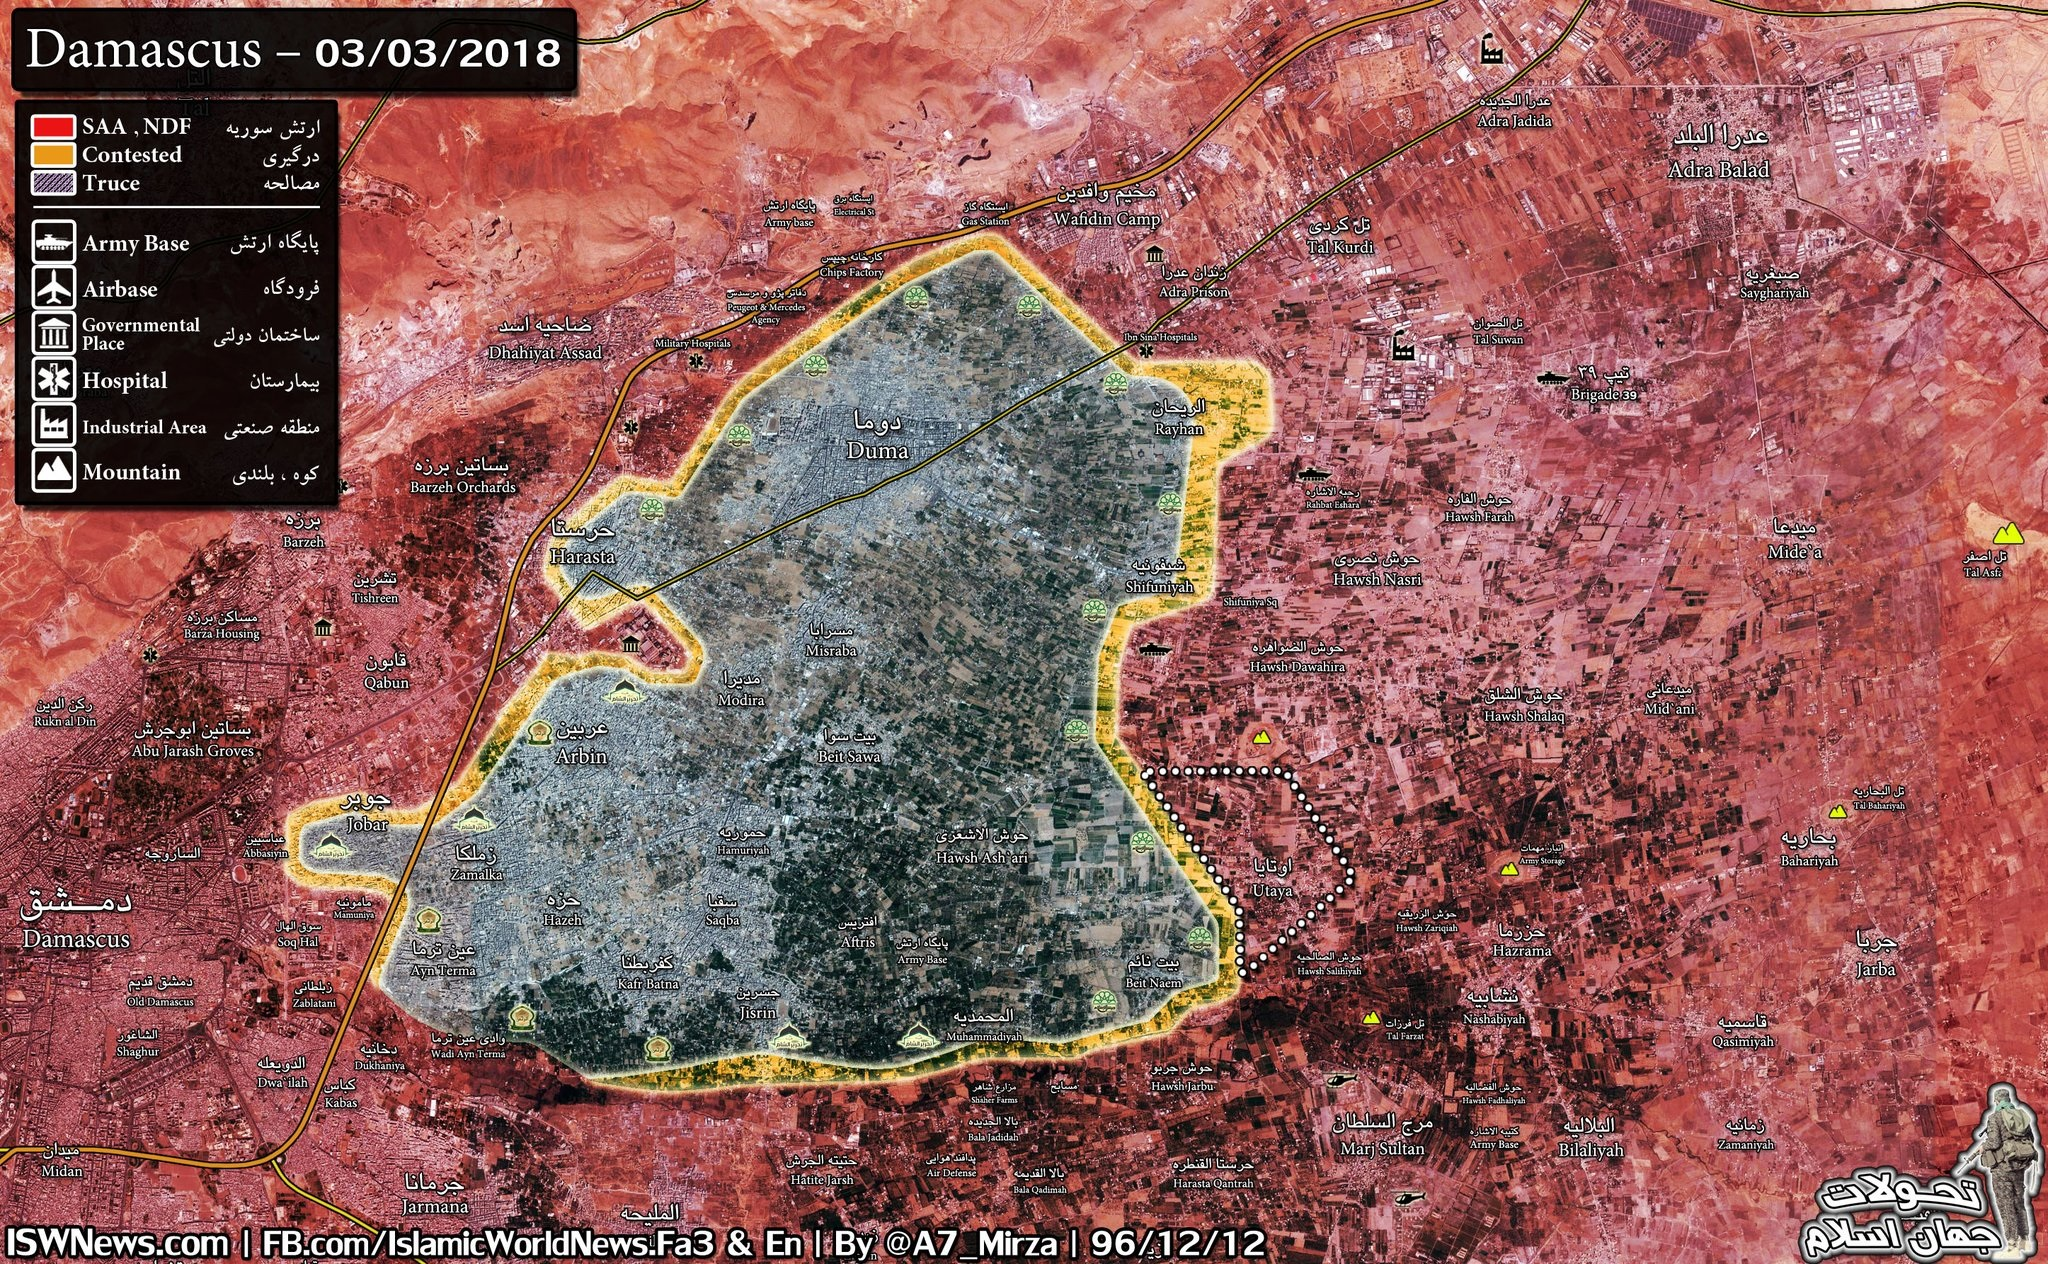 Syrian Army Captures Three Key Towns, Repels Militant Attack In East Ghouta (Map, Photos)